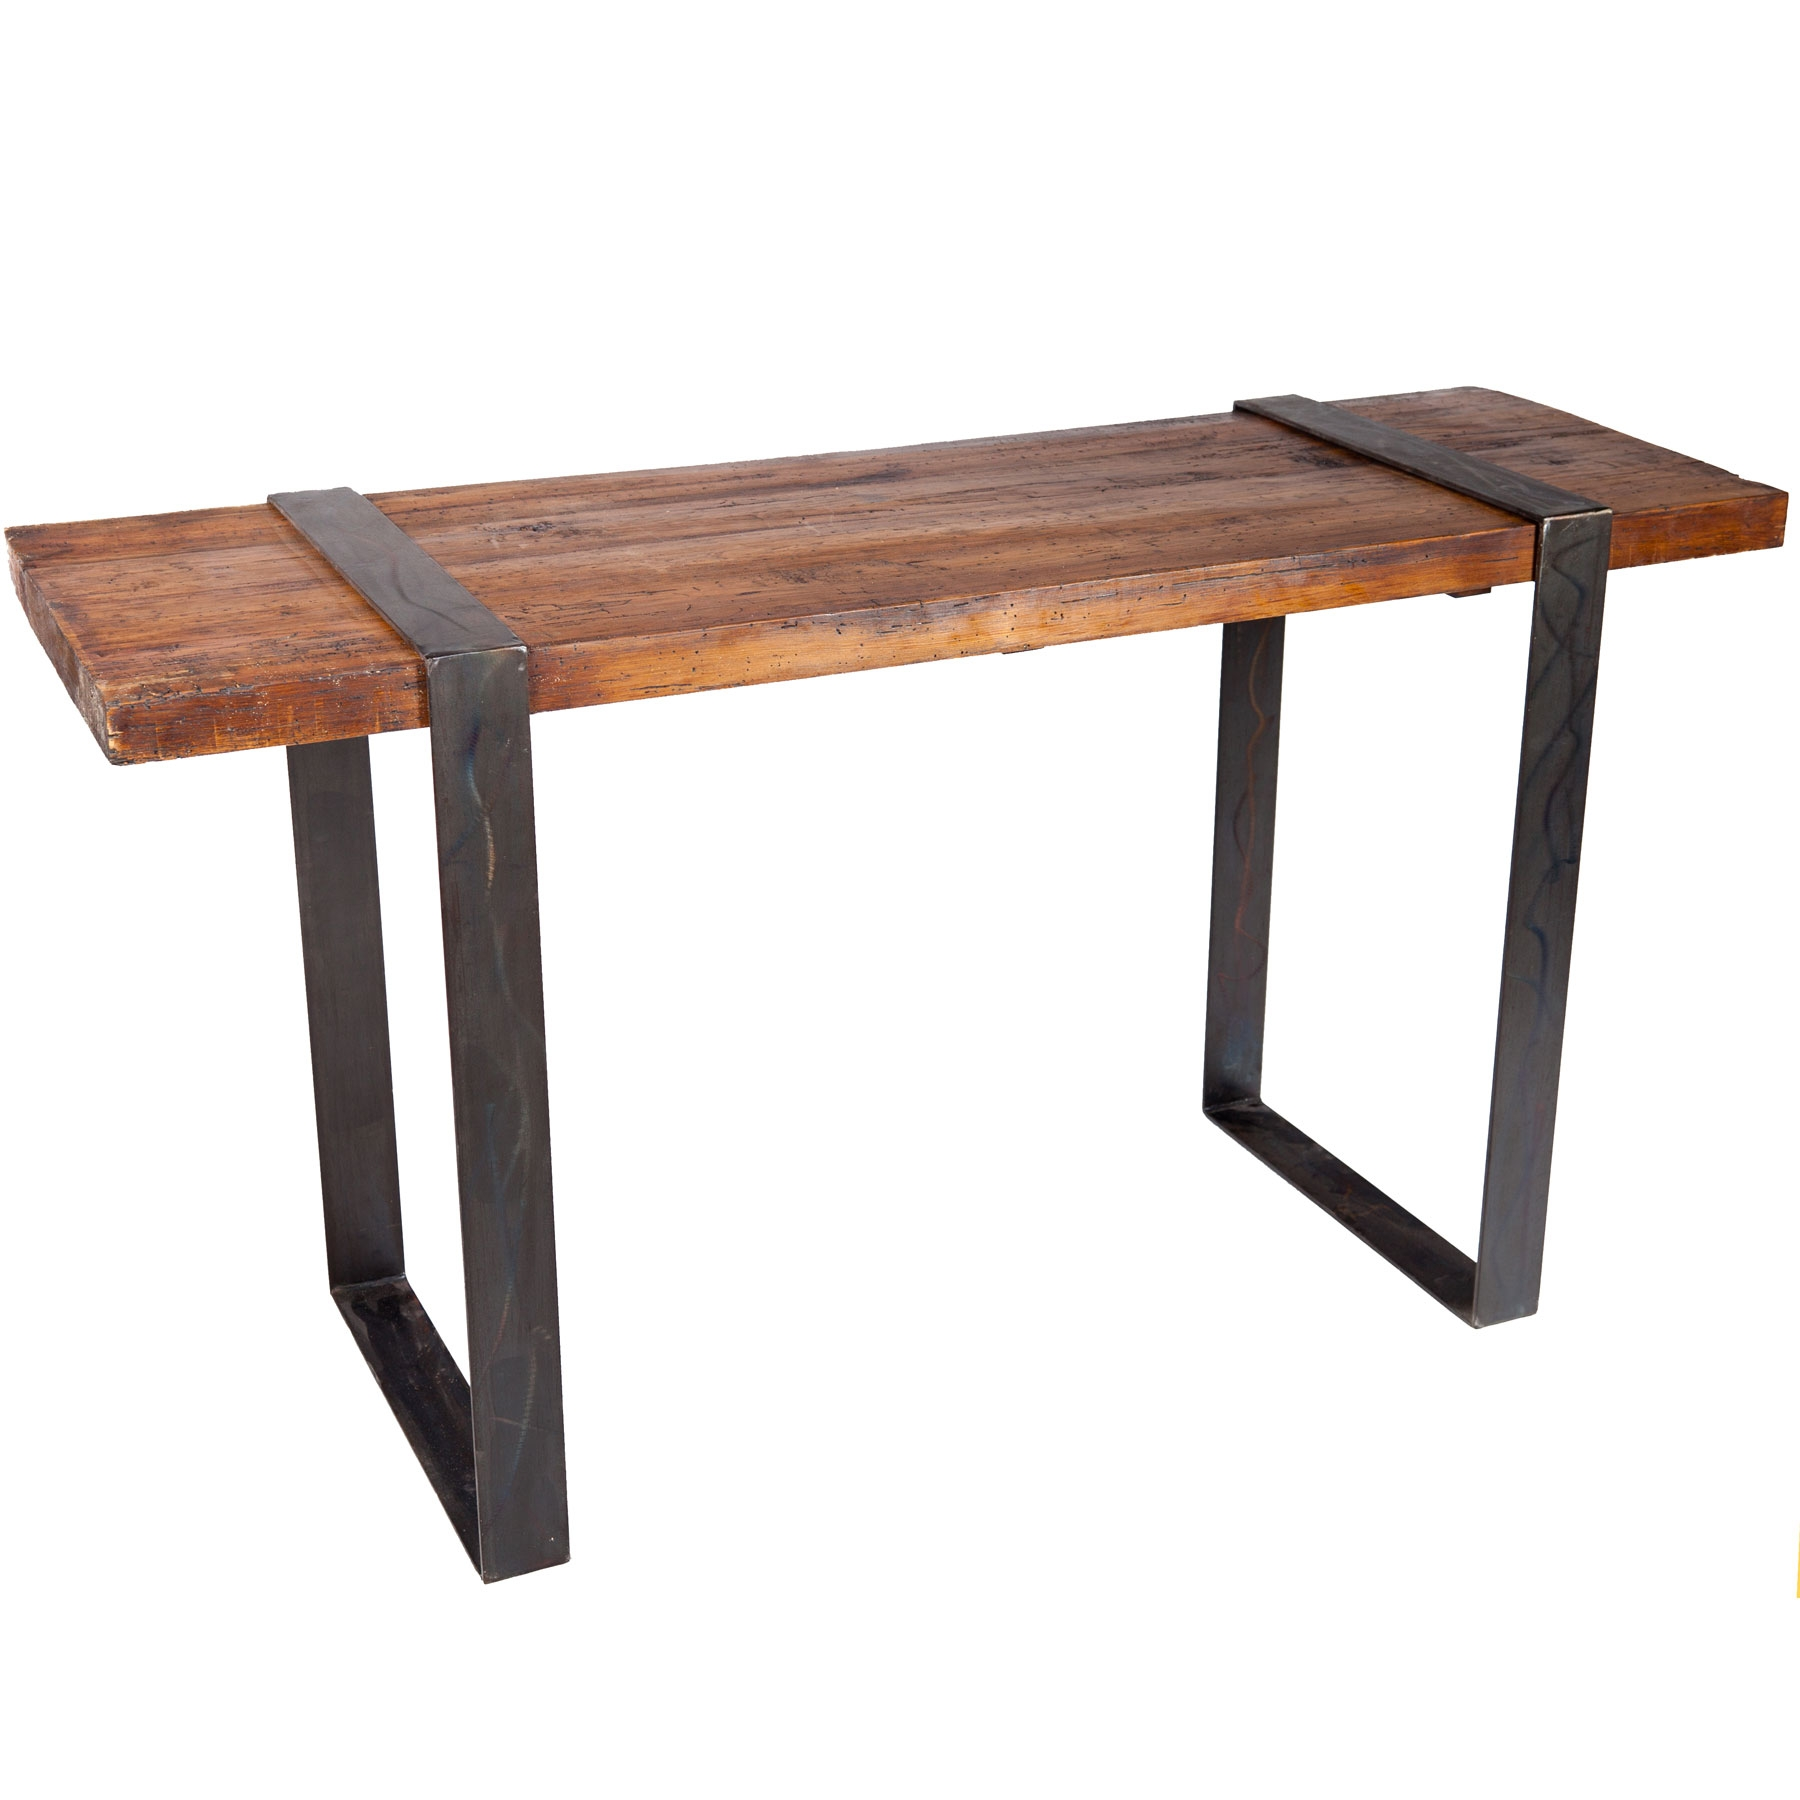 Jackson Rectangular Table With Metal Base: Jackson Iron Console Table With Steel Strap Legs And